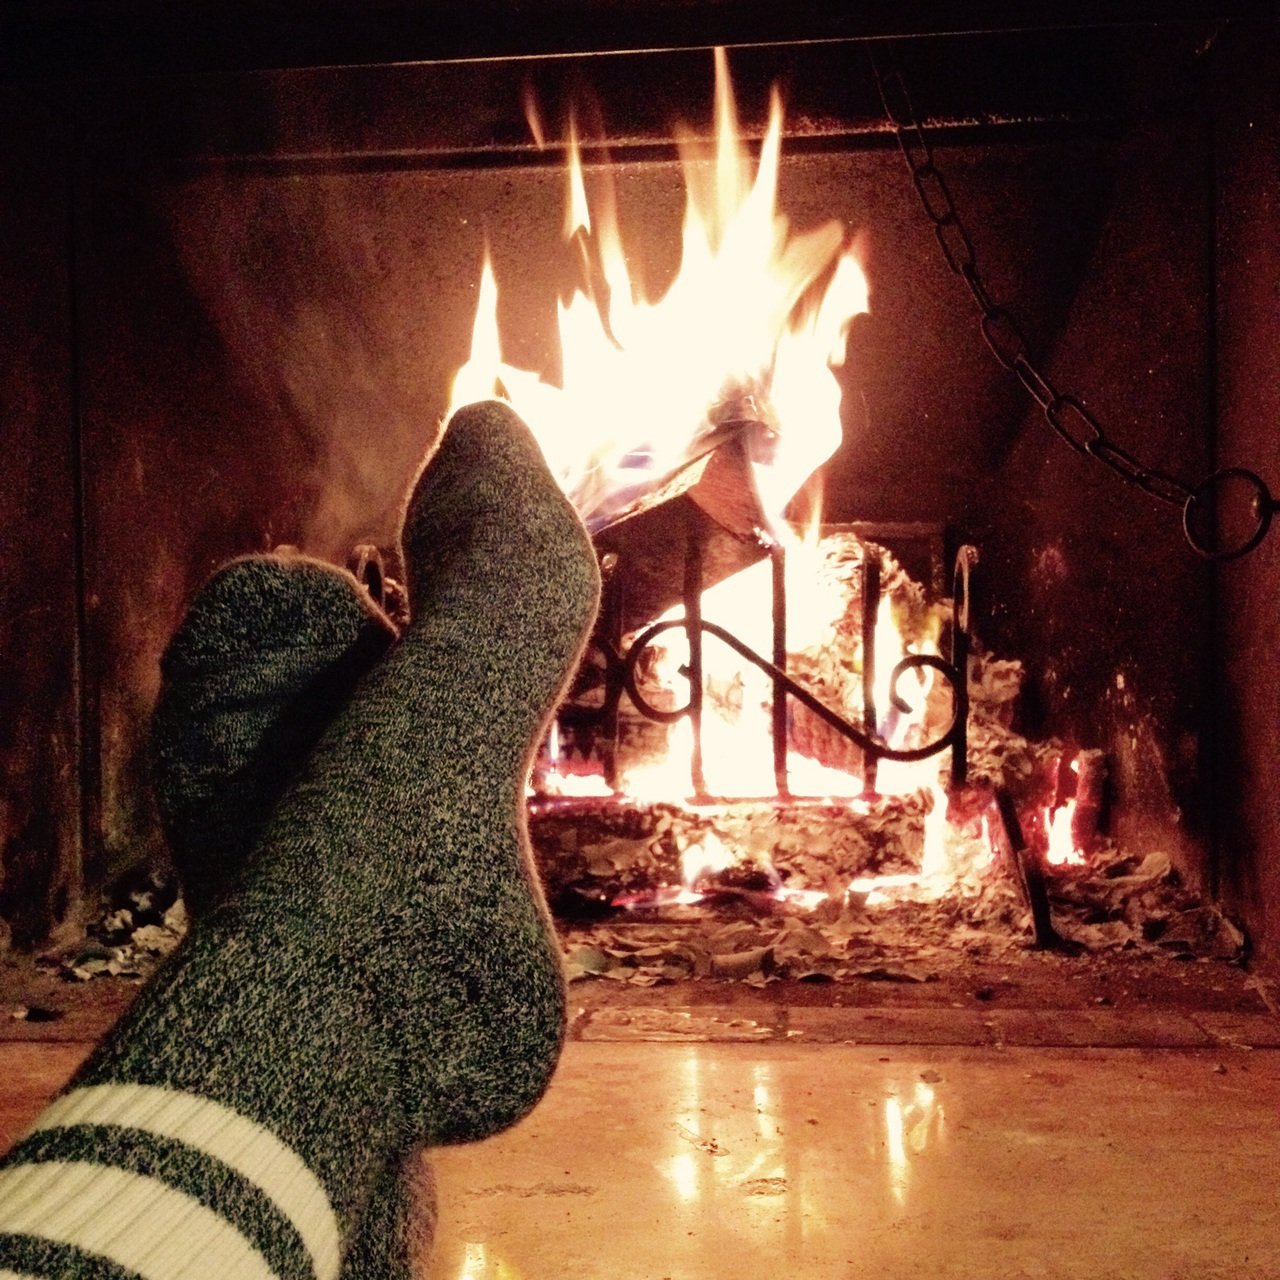 autumn, chilling, christmas, cozy, fire